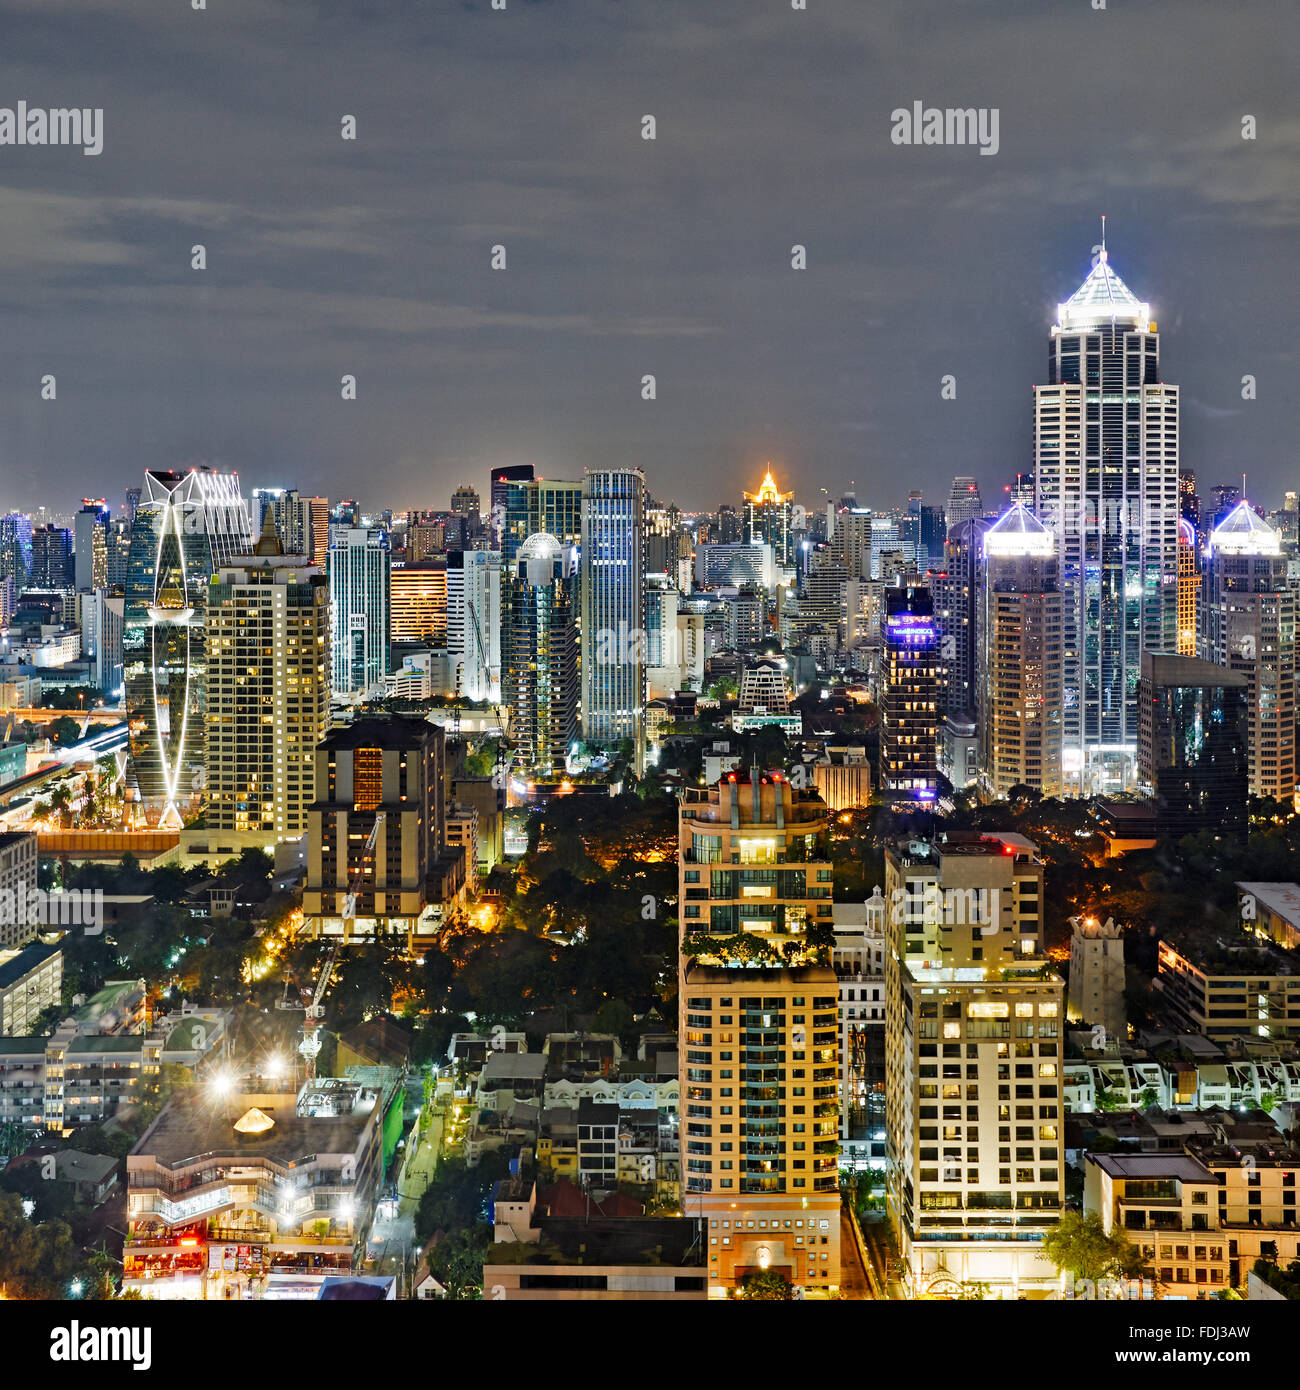 Elevated city view at night. Bangkok, Thailand. - Stock Image